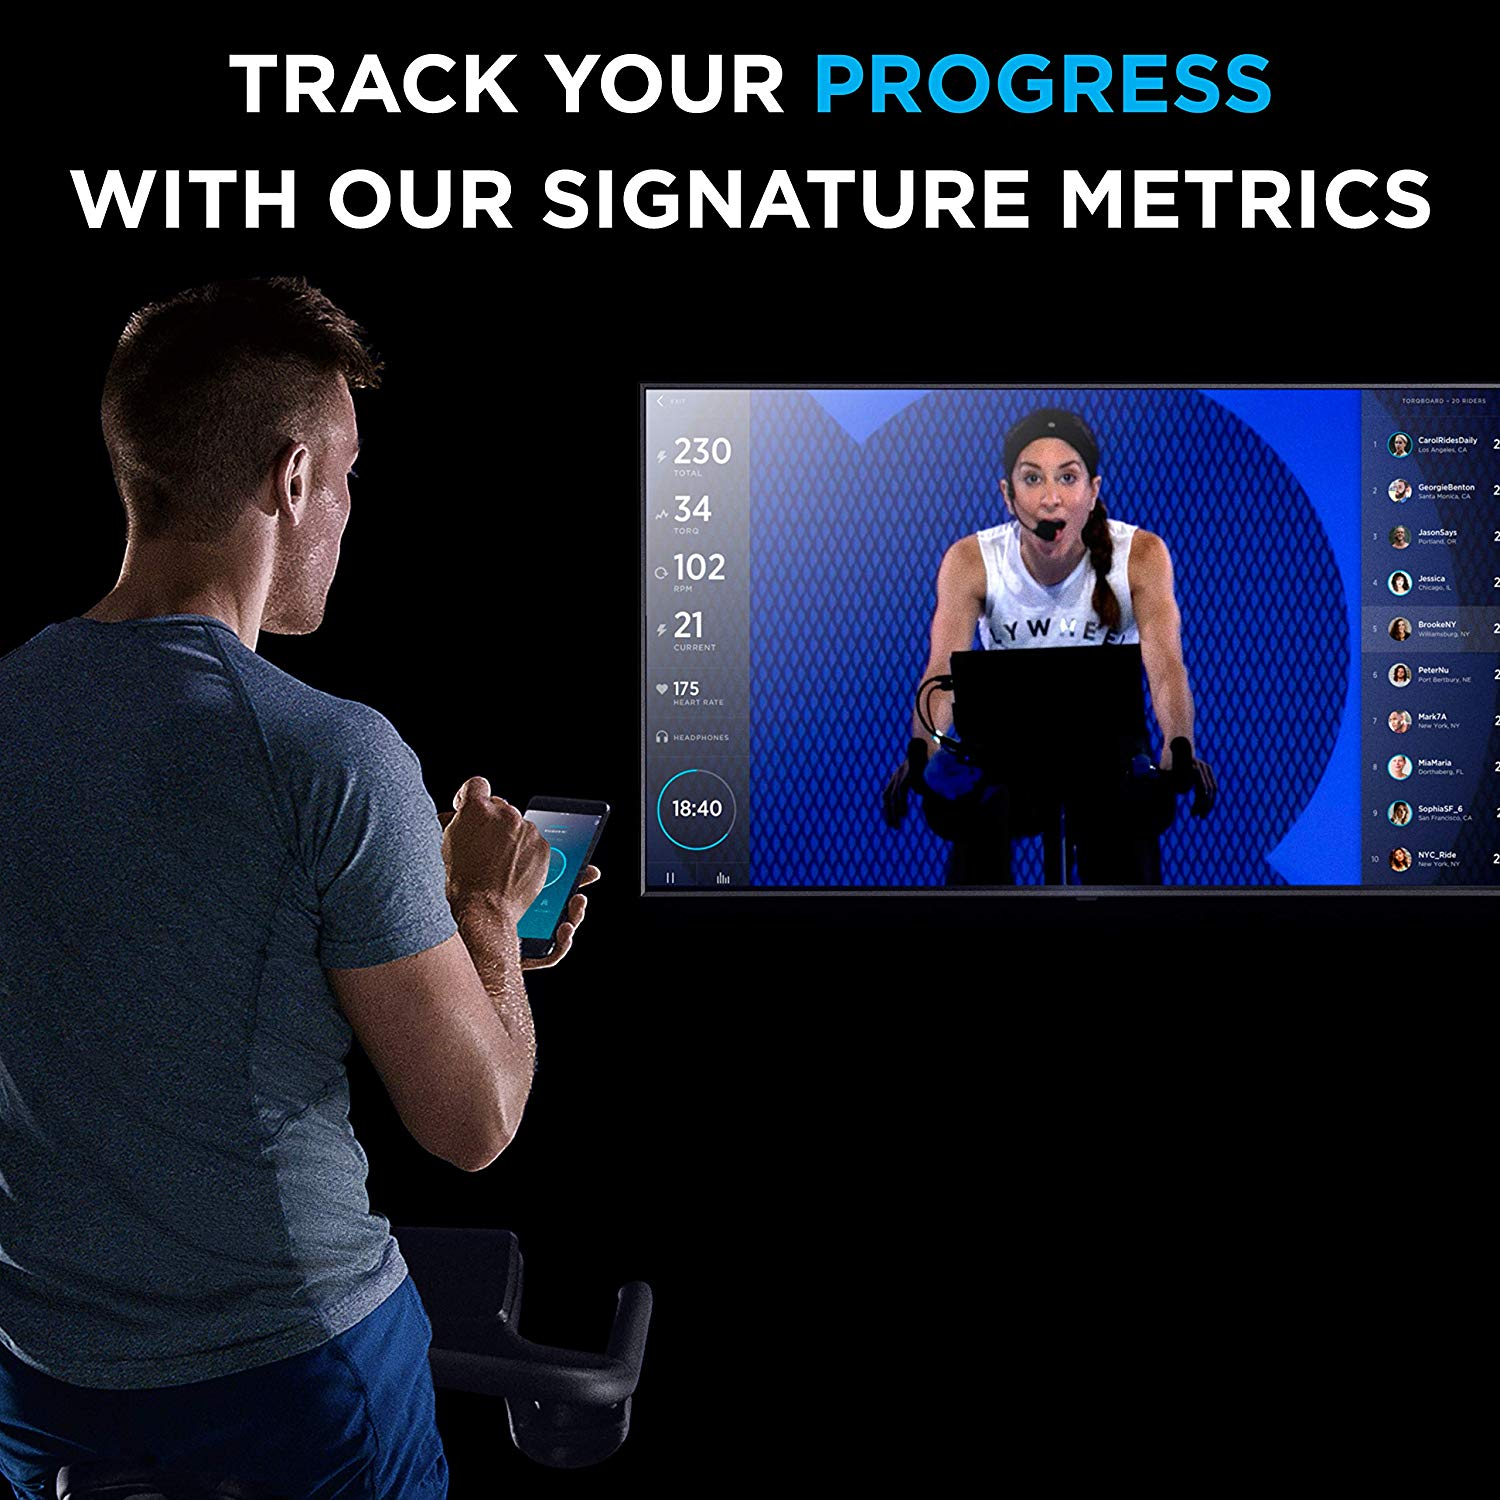 a man tracks his progress using her app